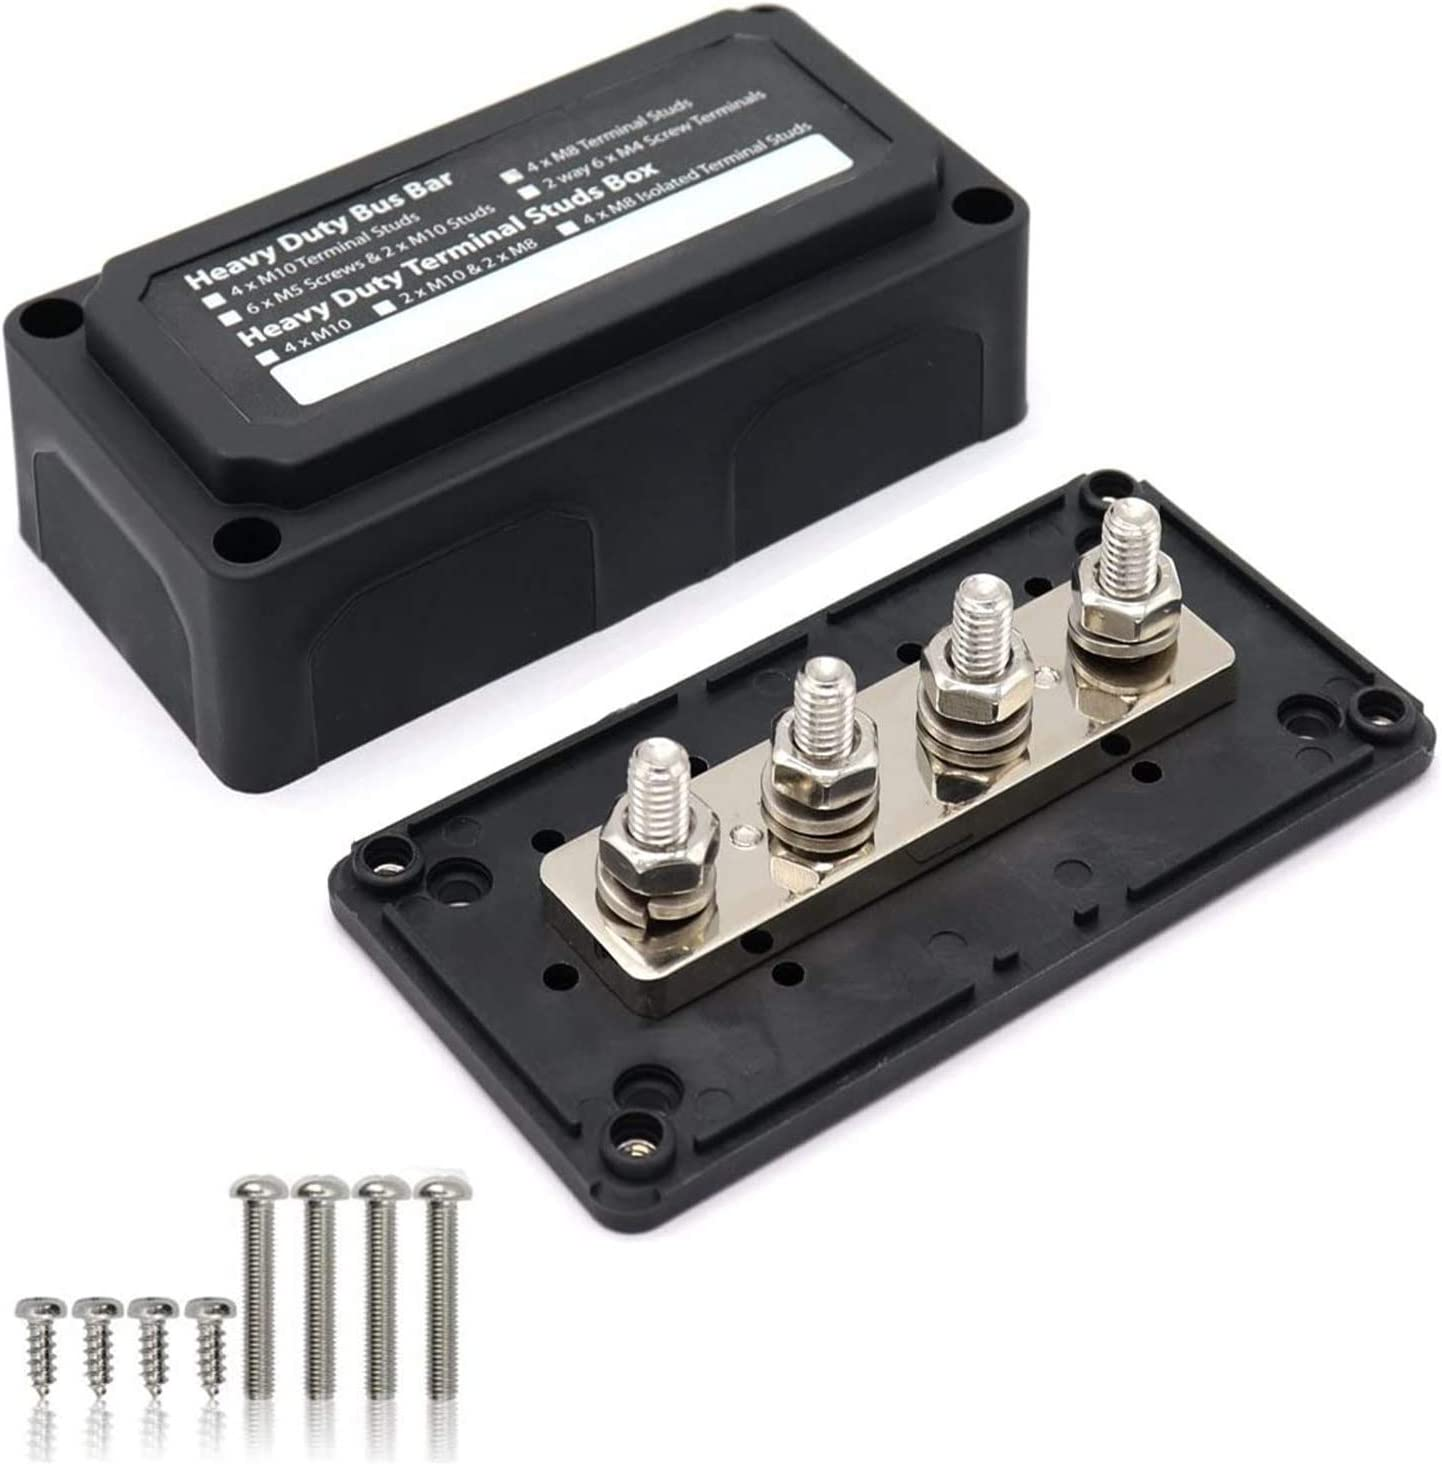 "Cllena 1//4/"" Stud 5//32/"" Screws Power Distribution Block 48V 100A M6 Post Battery Junction Block Heavy Duty Bus Bar for Car Rv Truck Marine Boat Vehicles"